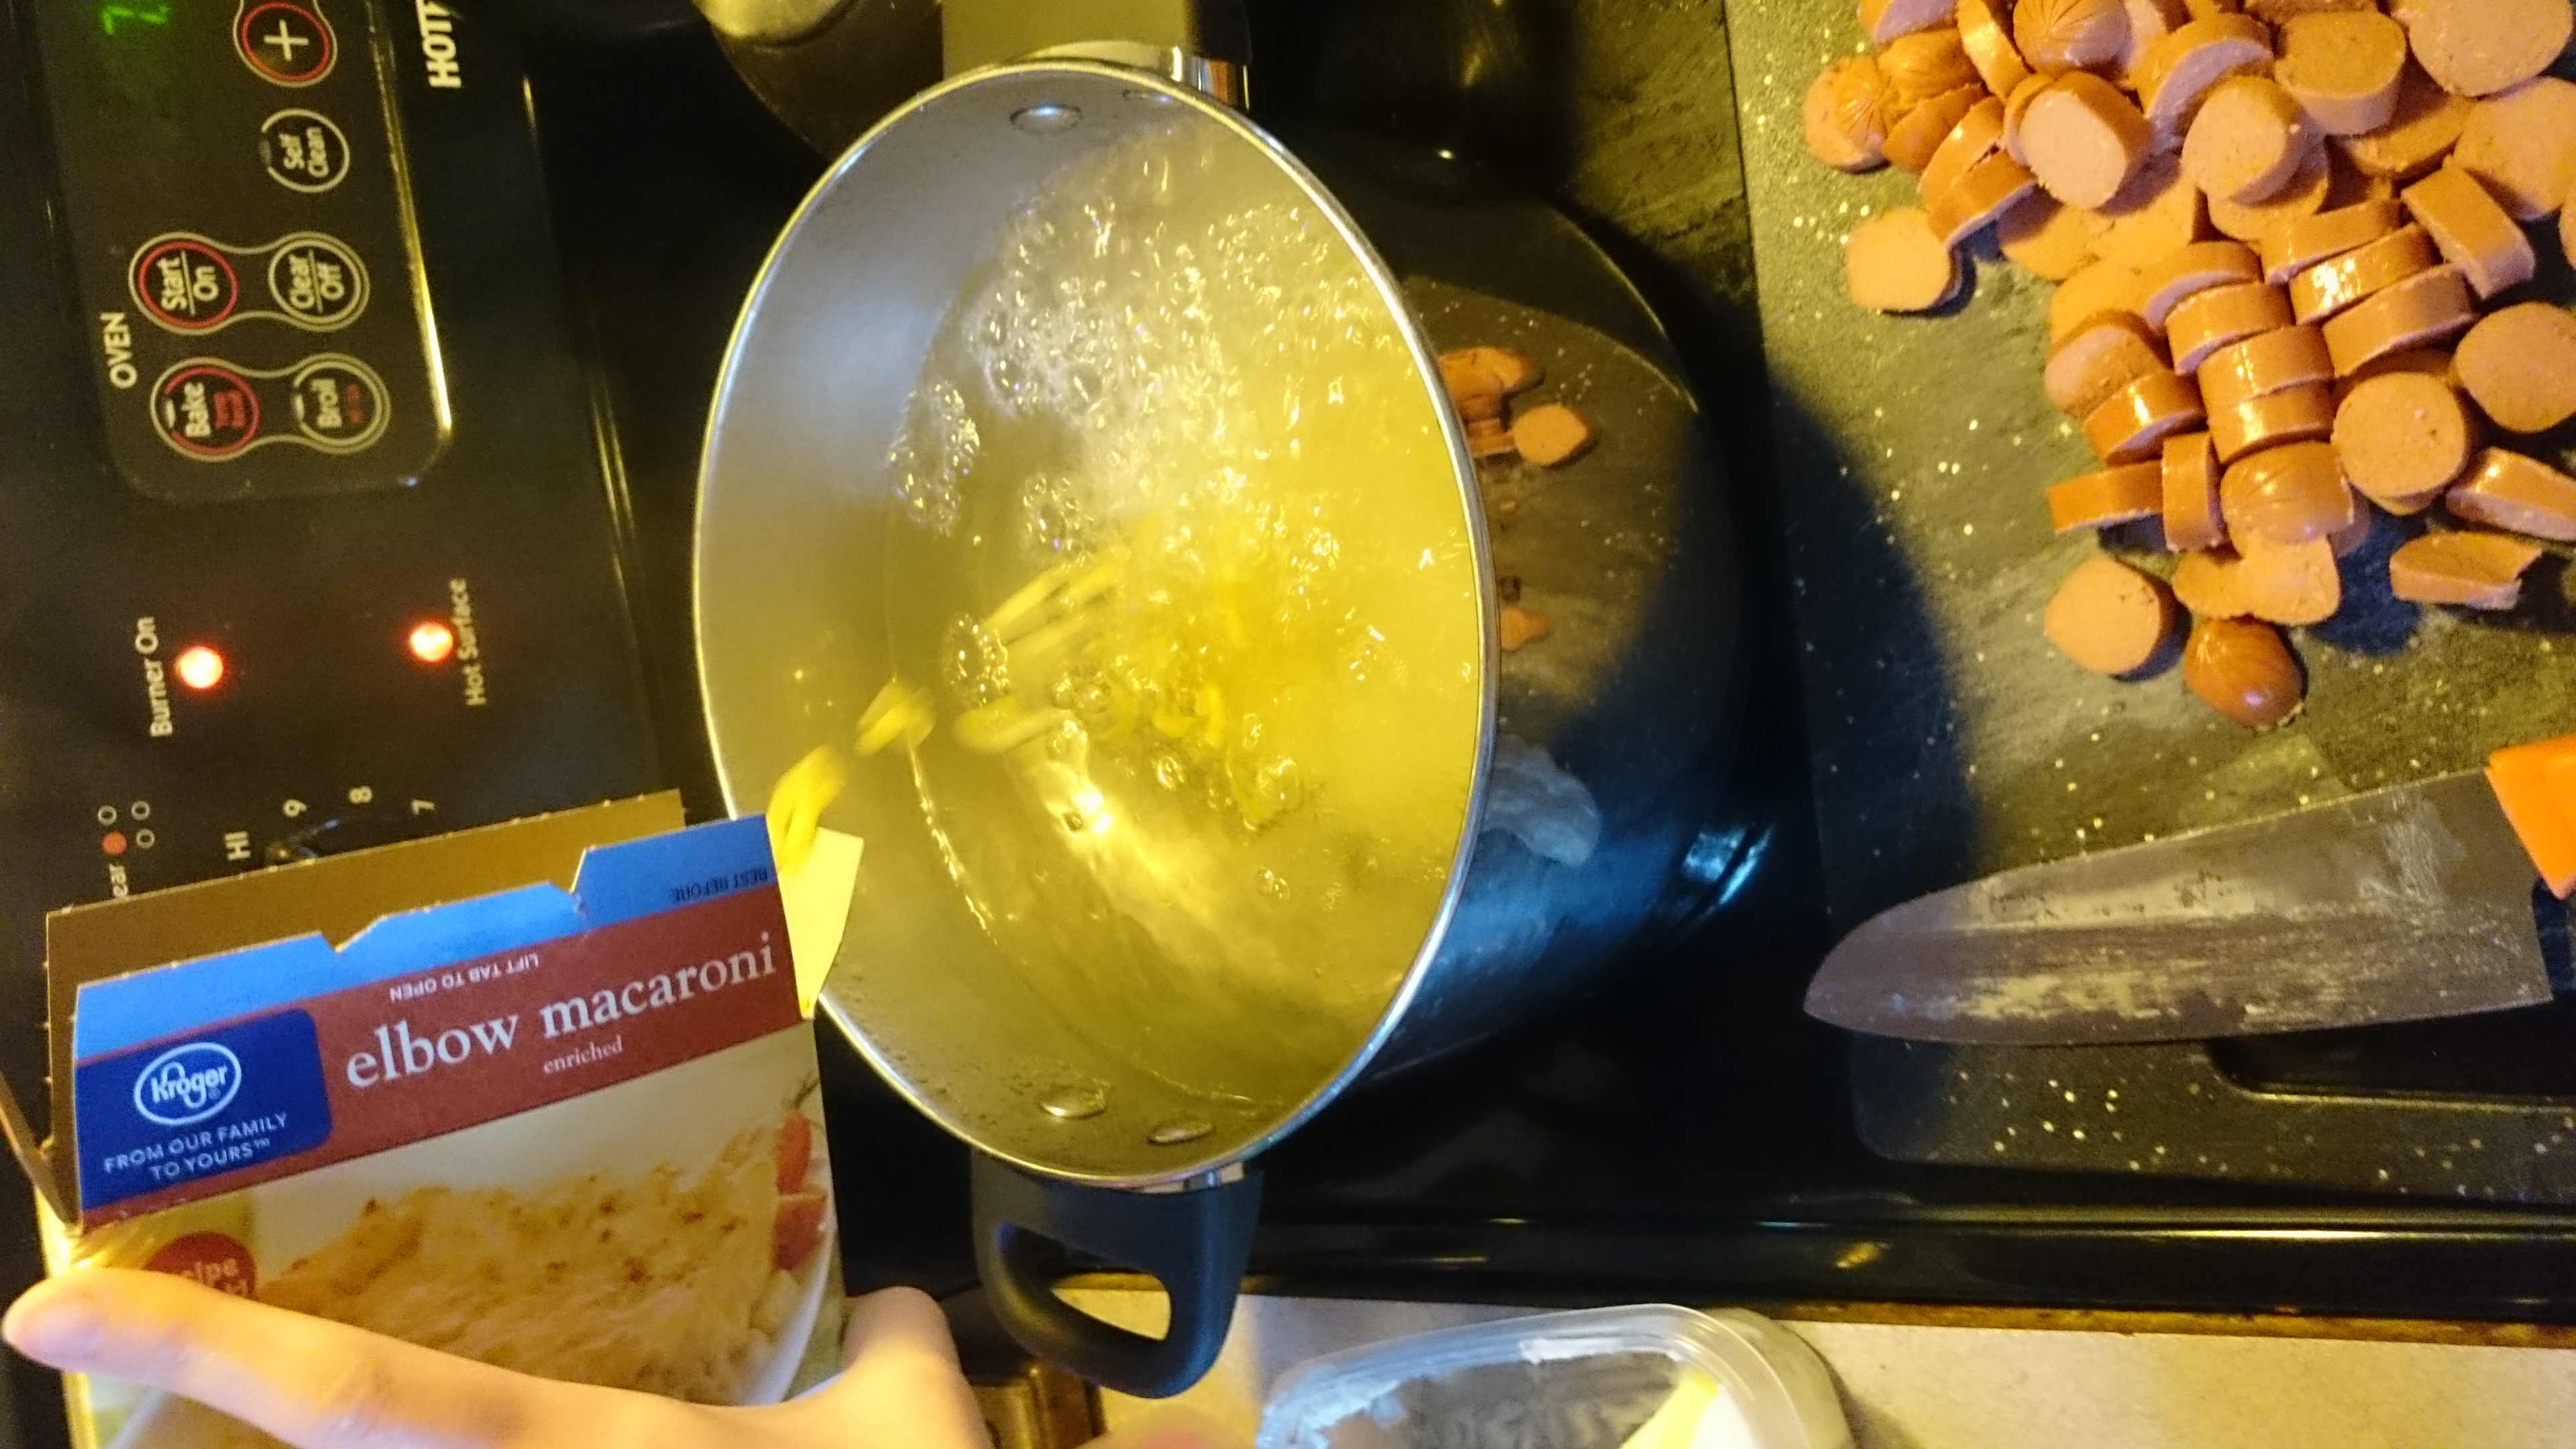 By this time, the water should be boiling, so add the macaroni noodles, set your timer for 8 minutes, stir the pasta, and add some salt to the water.